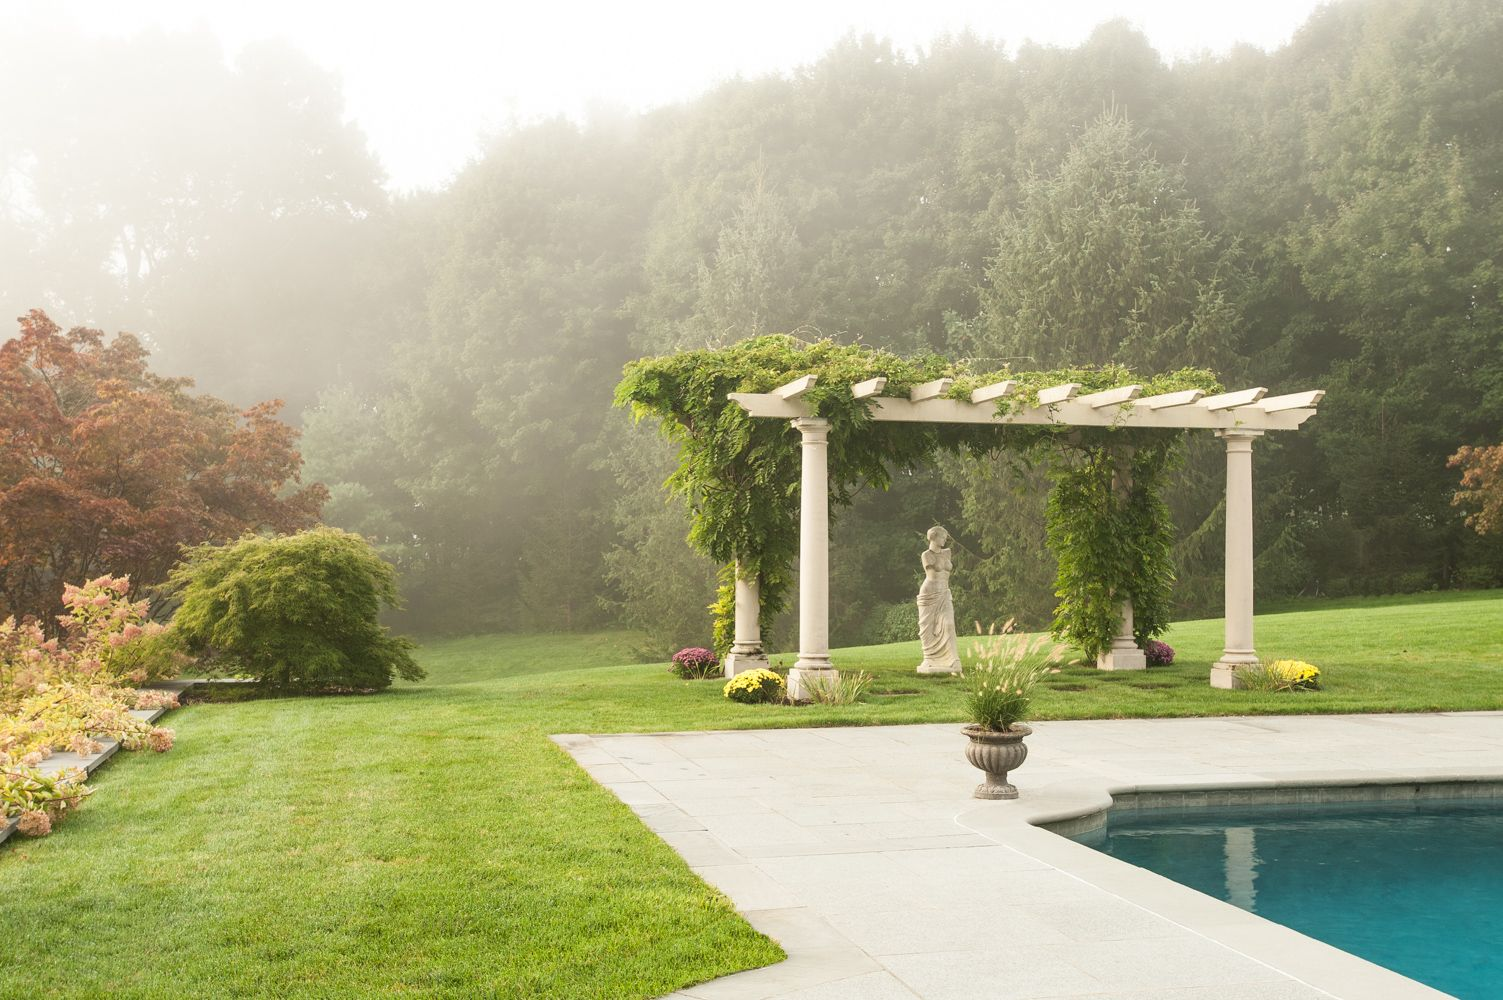 Design and Installation by Elise Landscapes